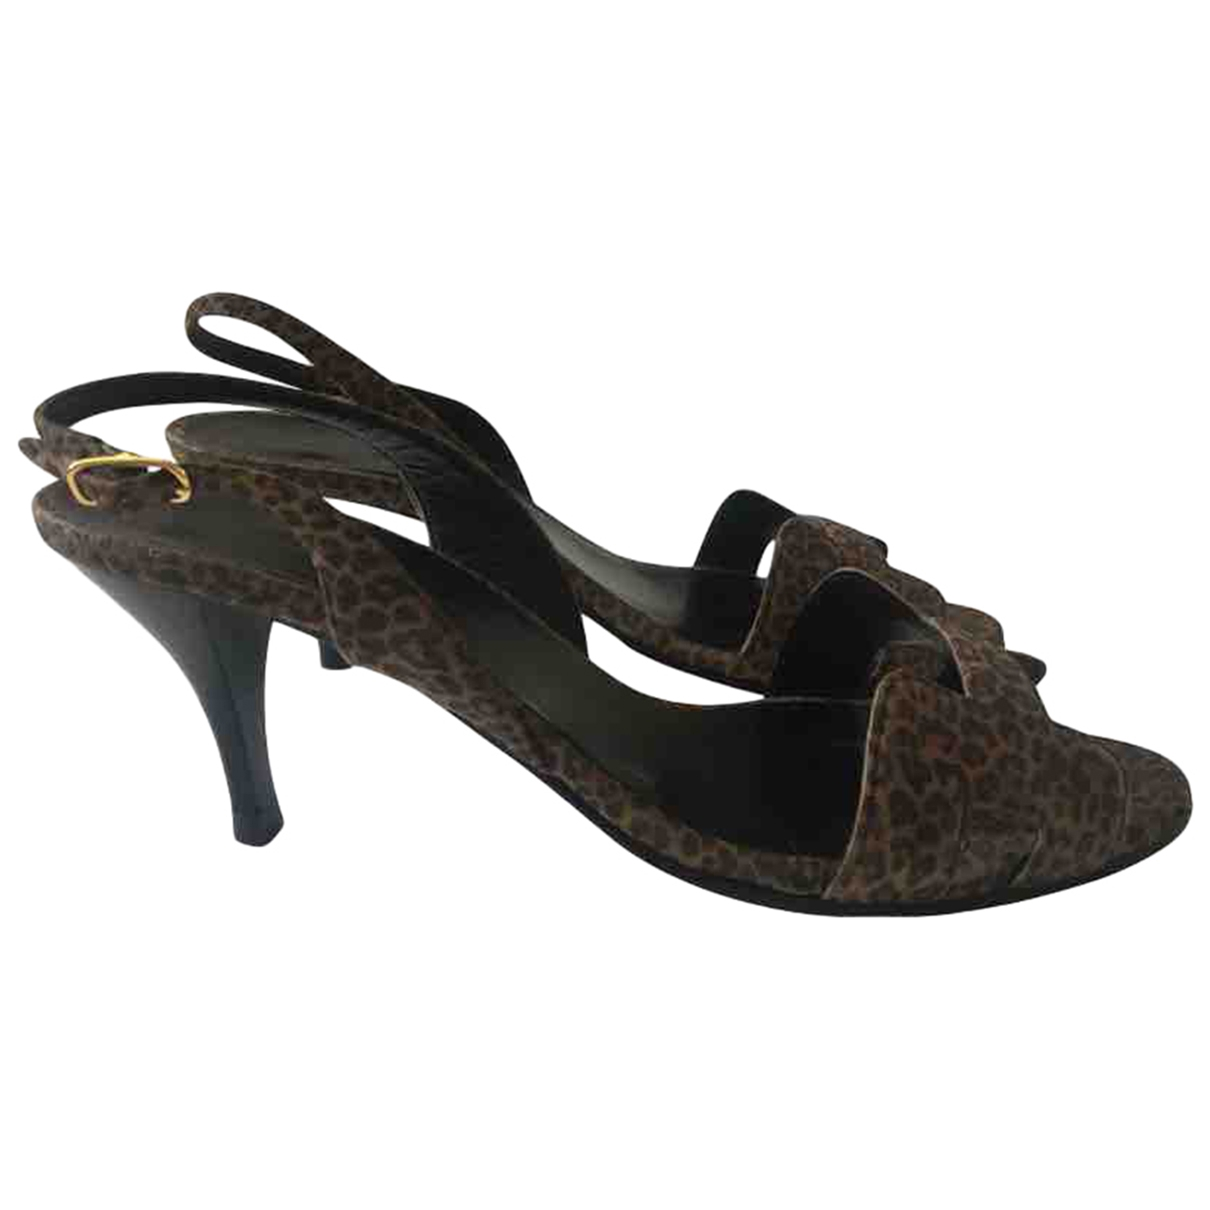 Hermes Night Sandalen in  Schwarz Veloursleder